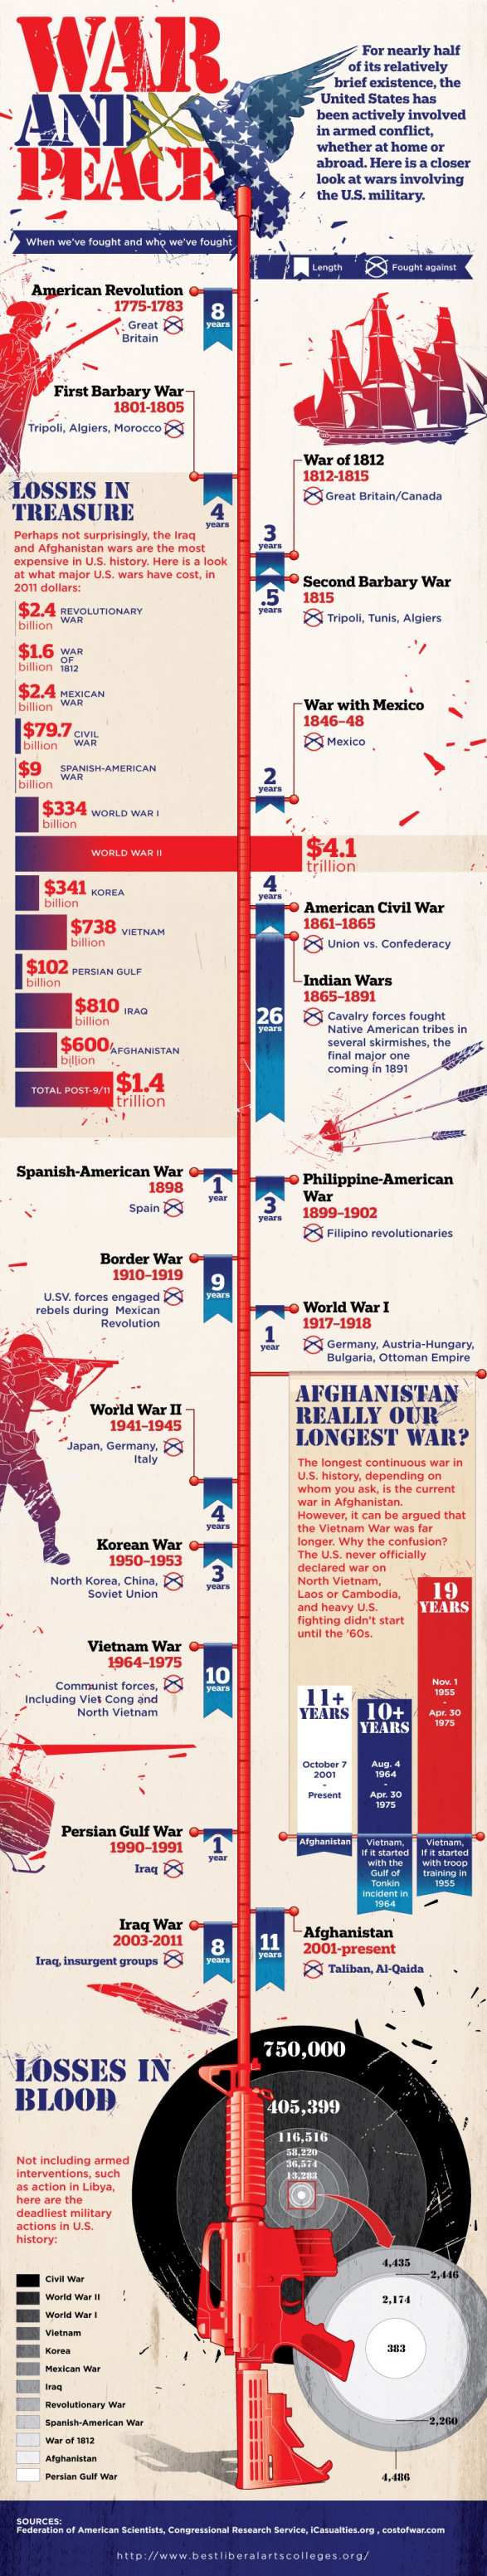 The Wars the US fought